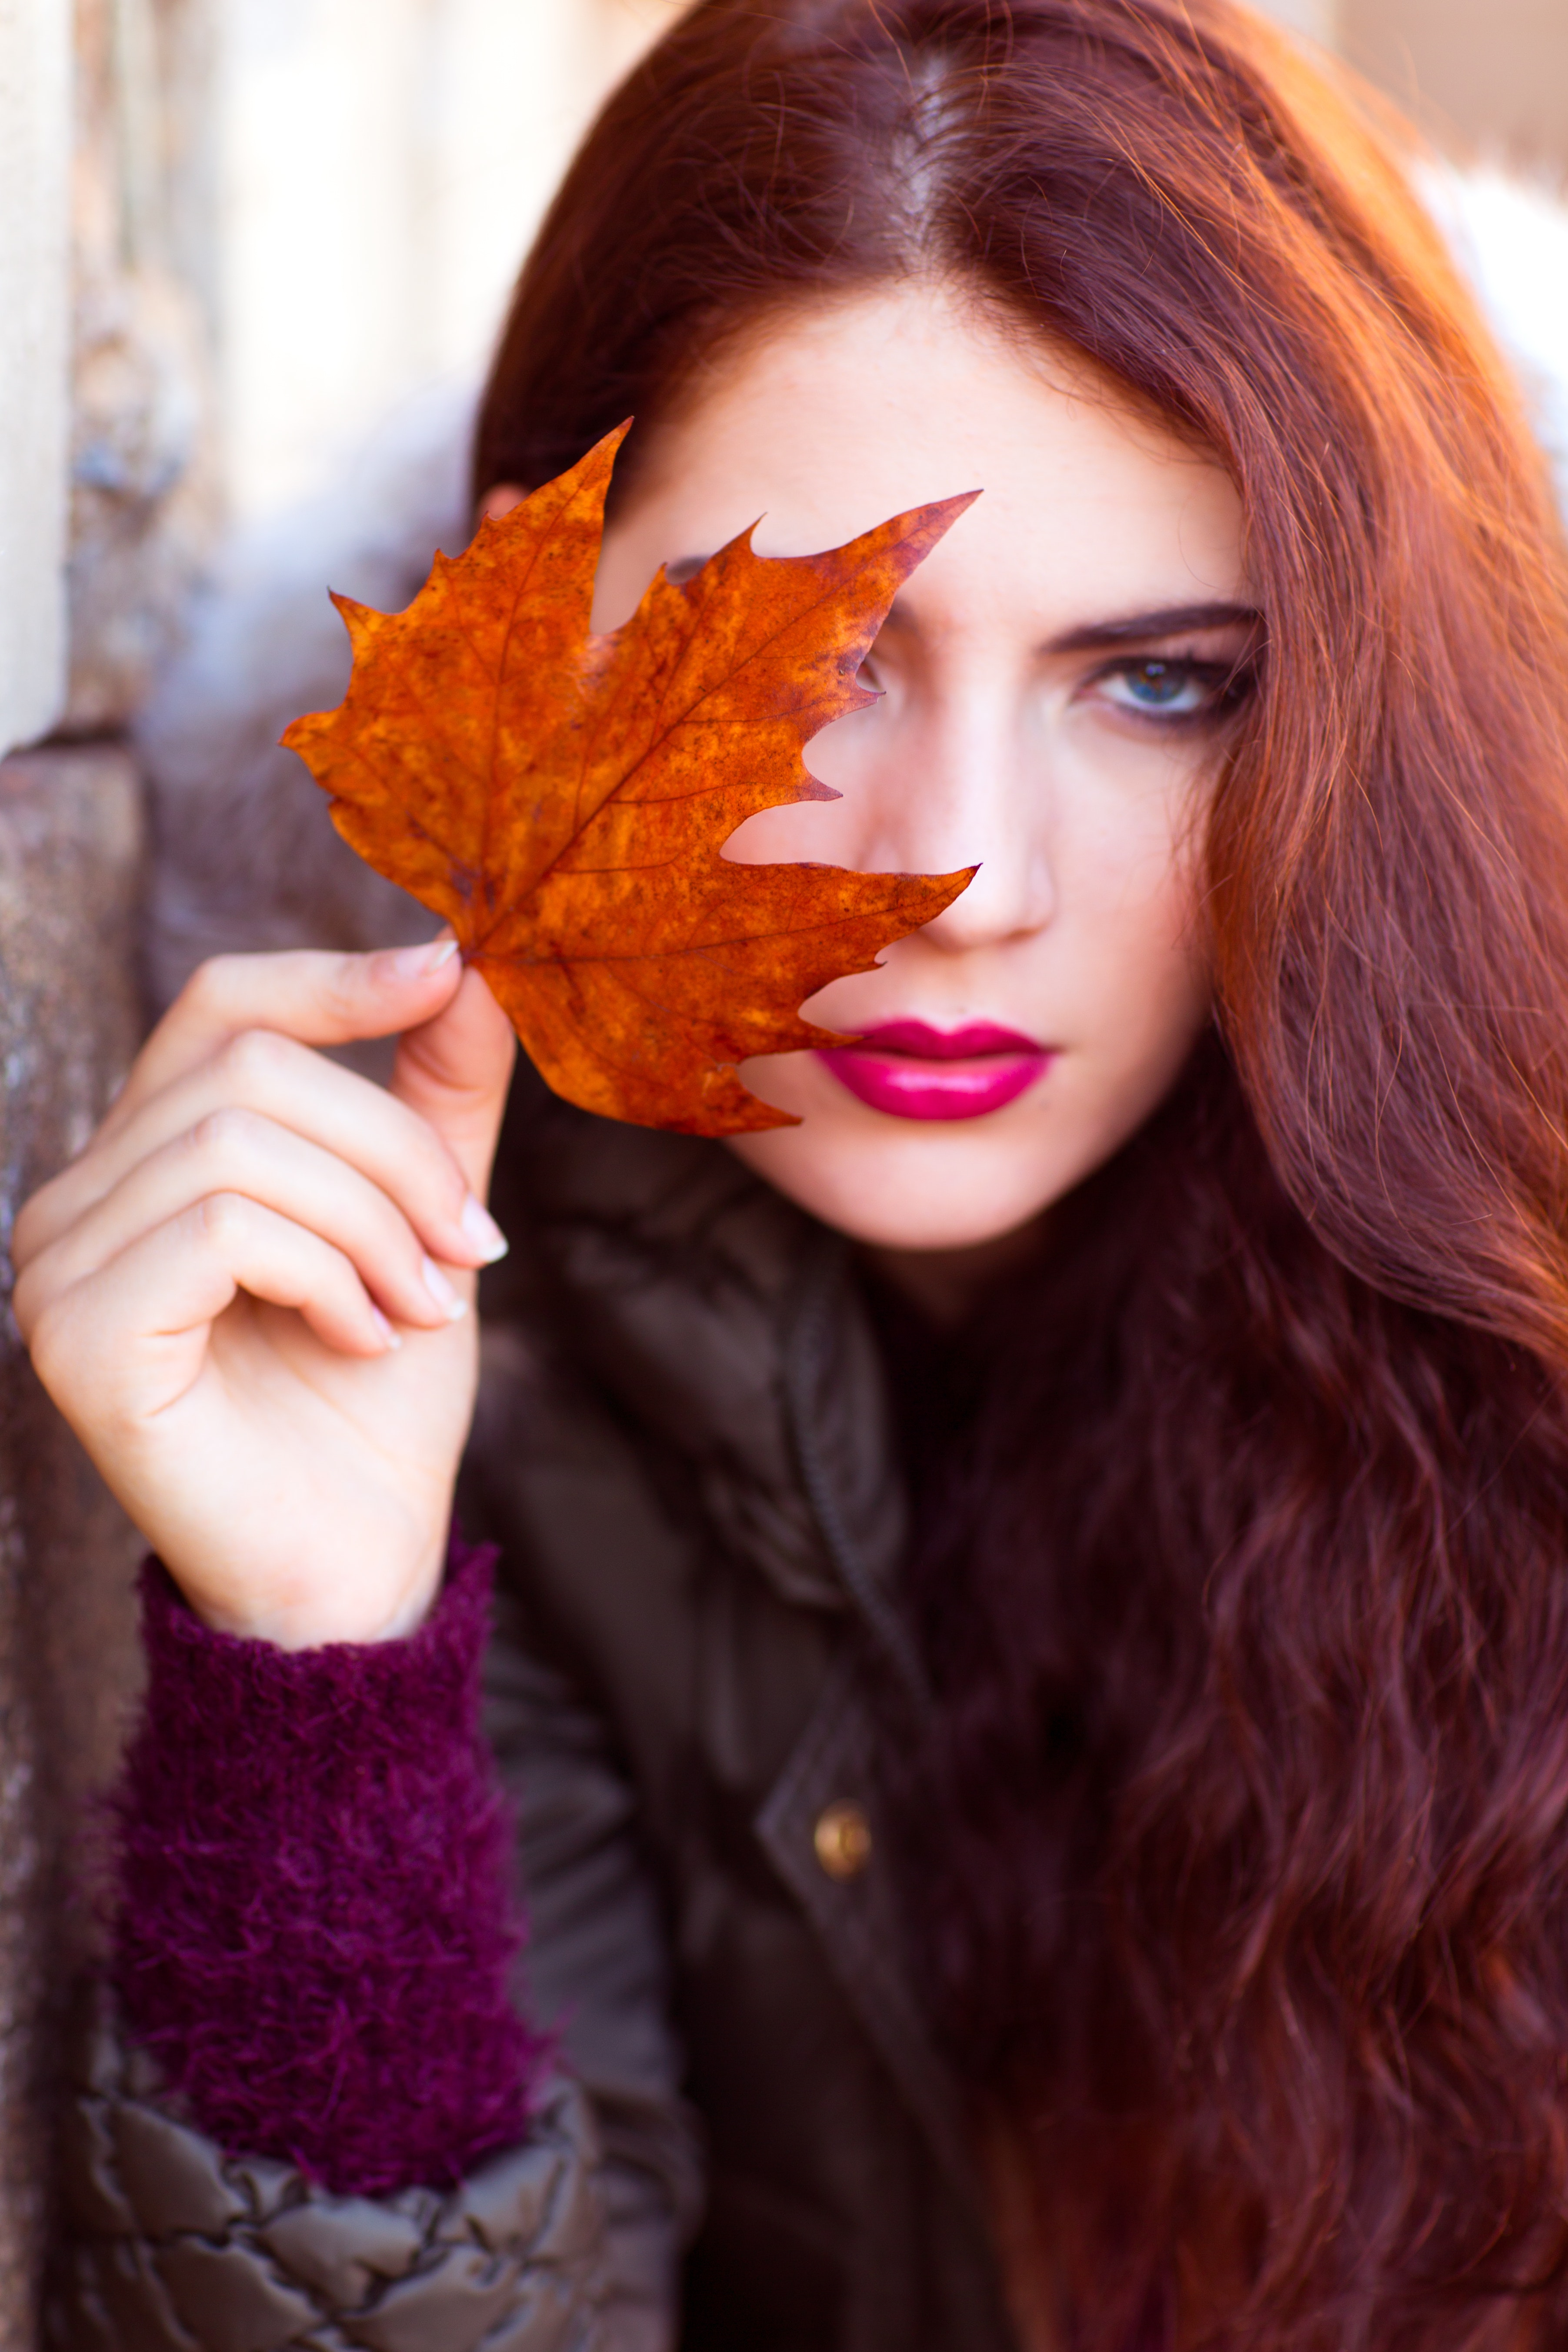 Woman wearing black zip-up jacket holding brown maple leaf photo